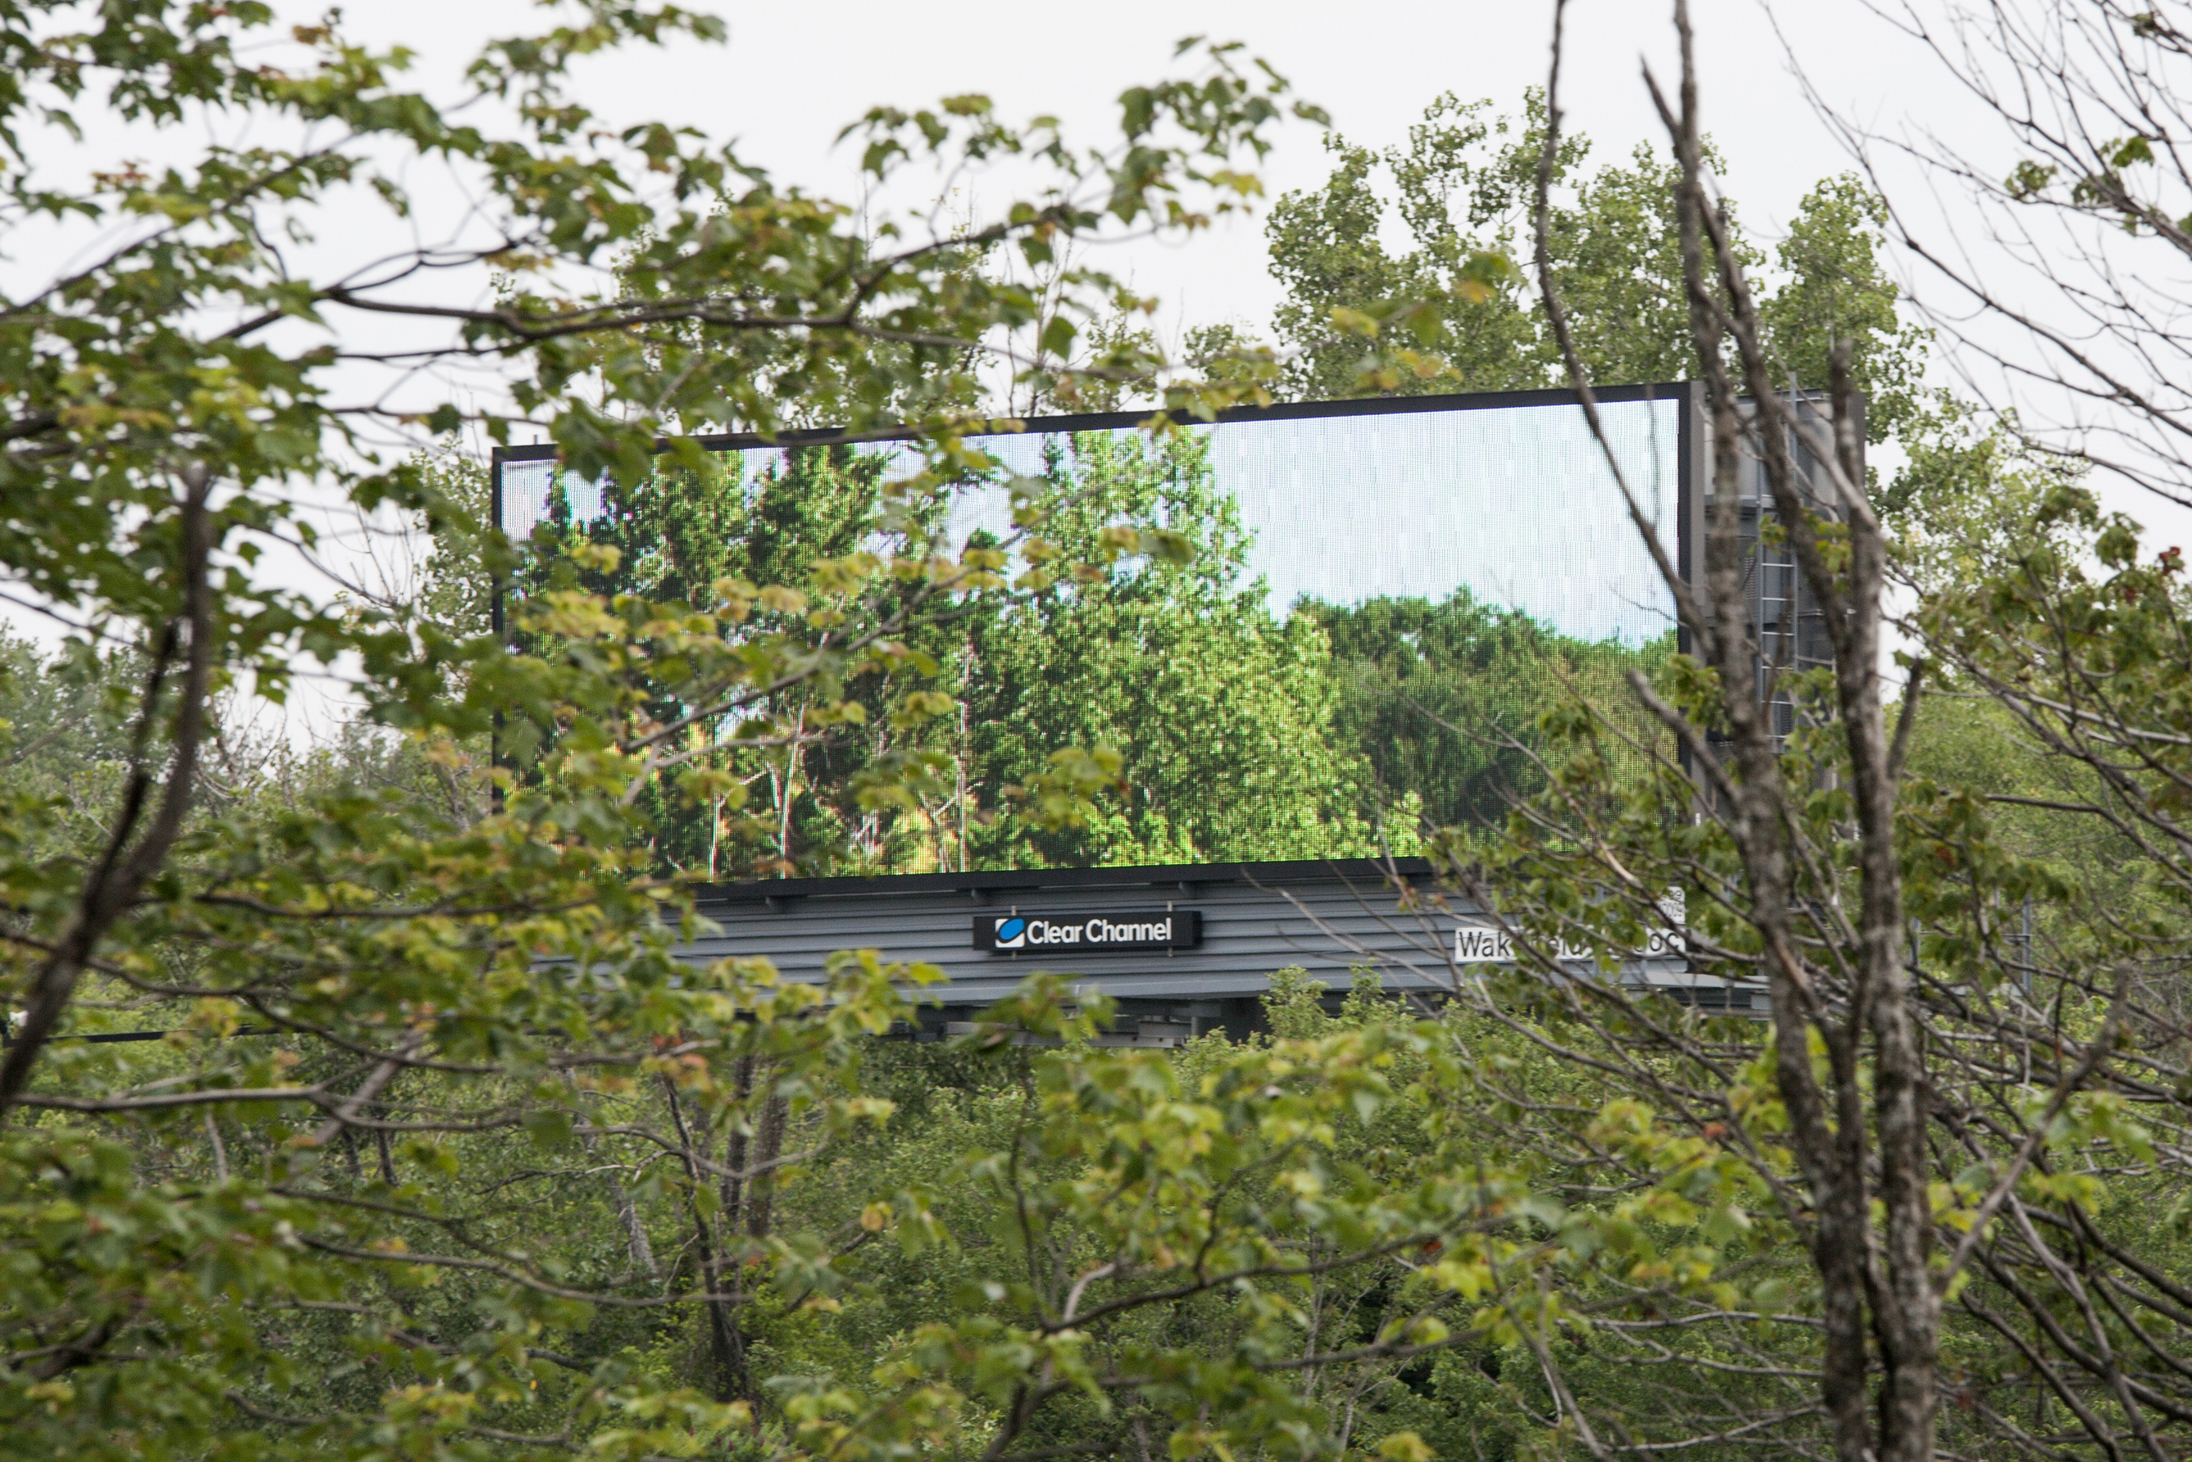 Artist Rents Roadside Billboards to Display Pictures of Nature